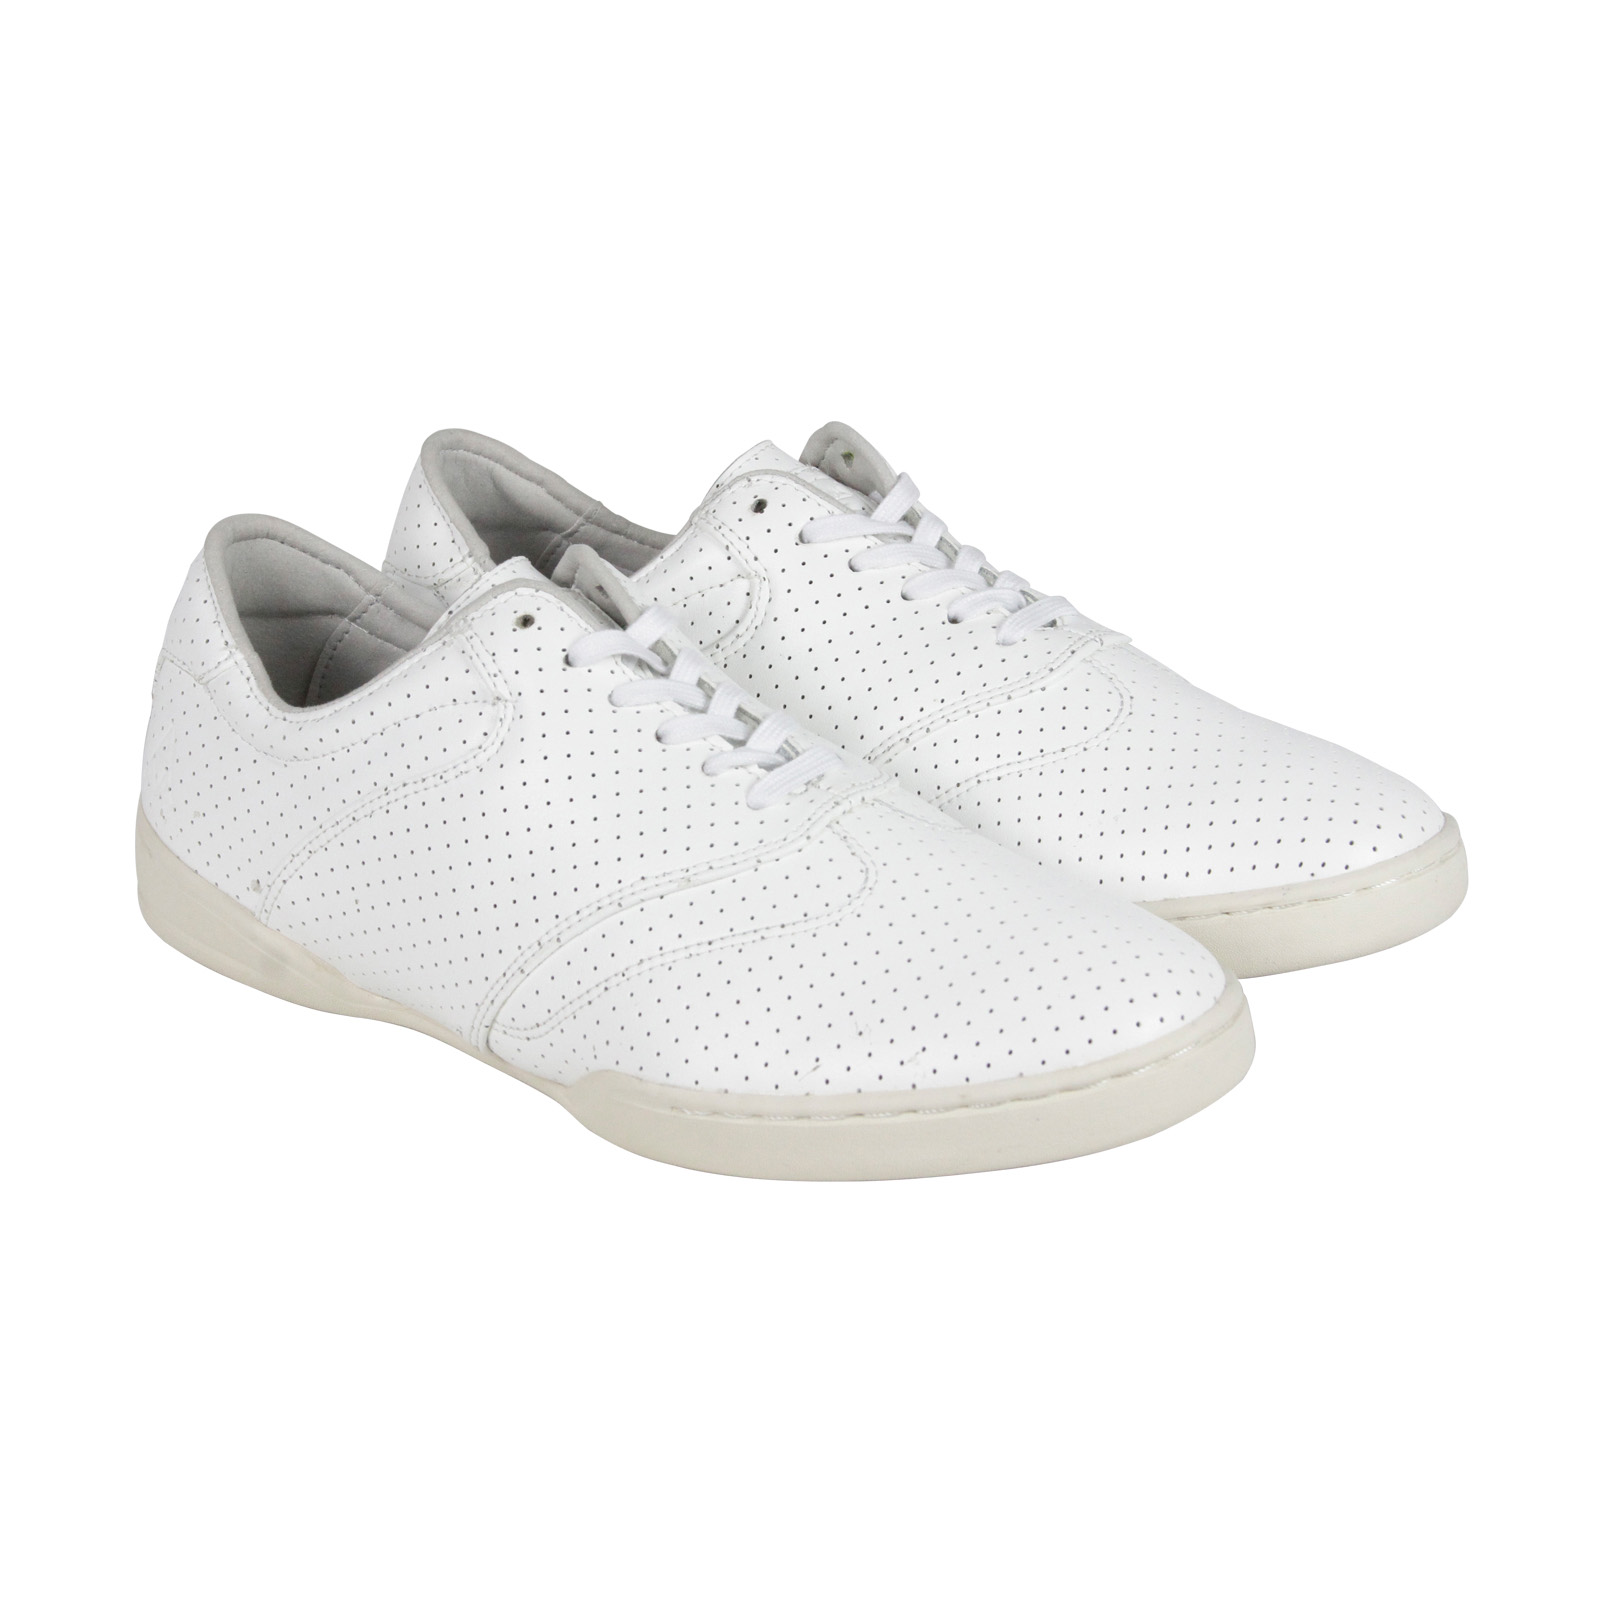 HUF - HUF Dylan Mens White Leather Lace